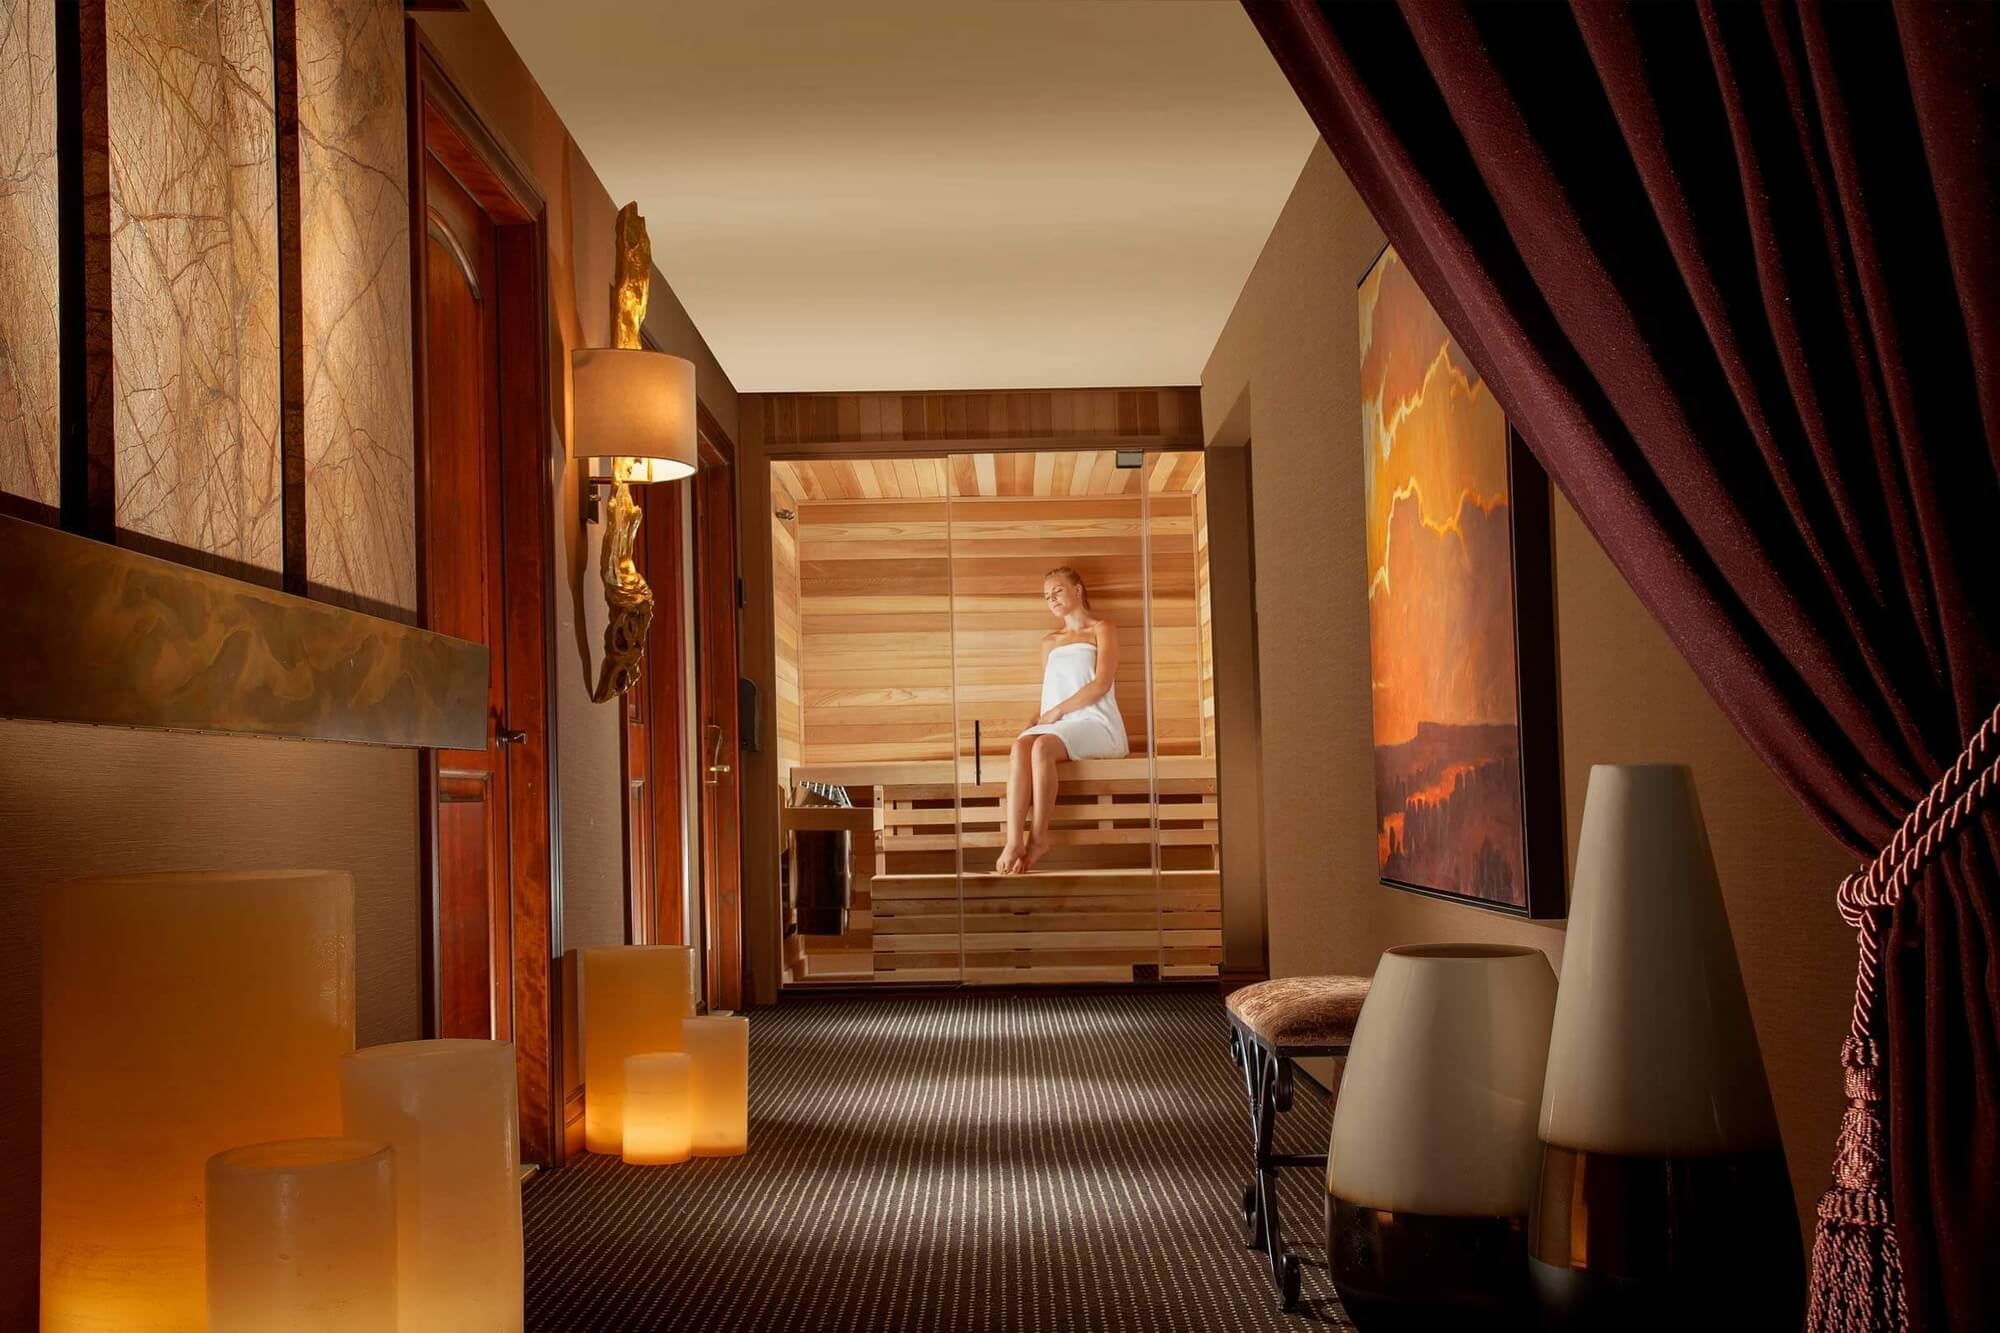 view of hallway looking at woman enjoying sauna